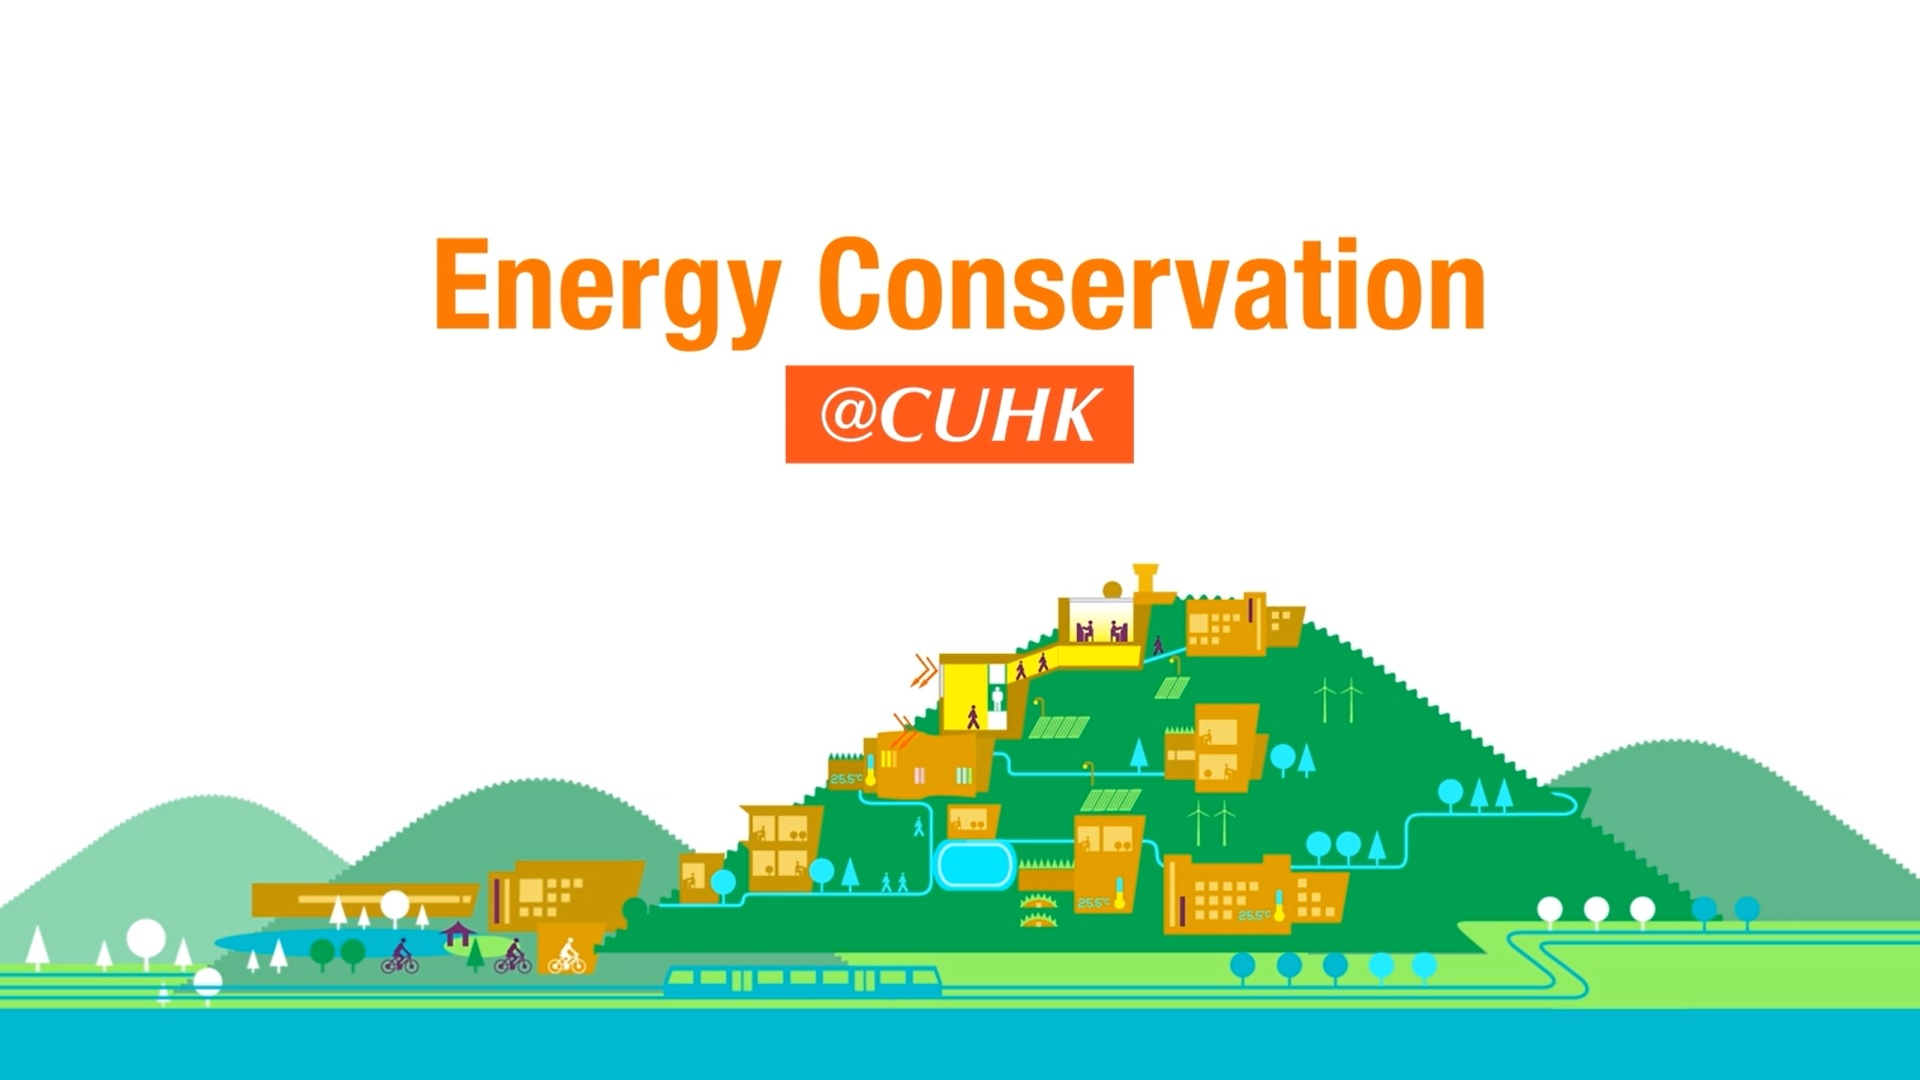 energy conservation cuhk